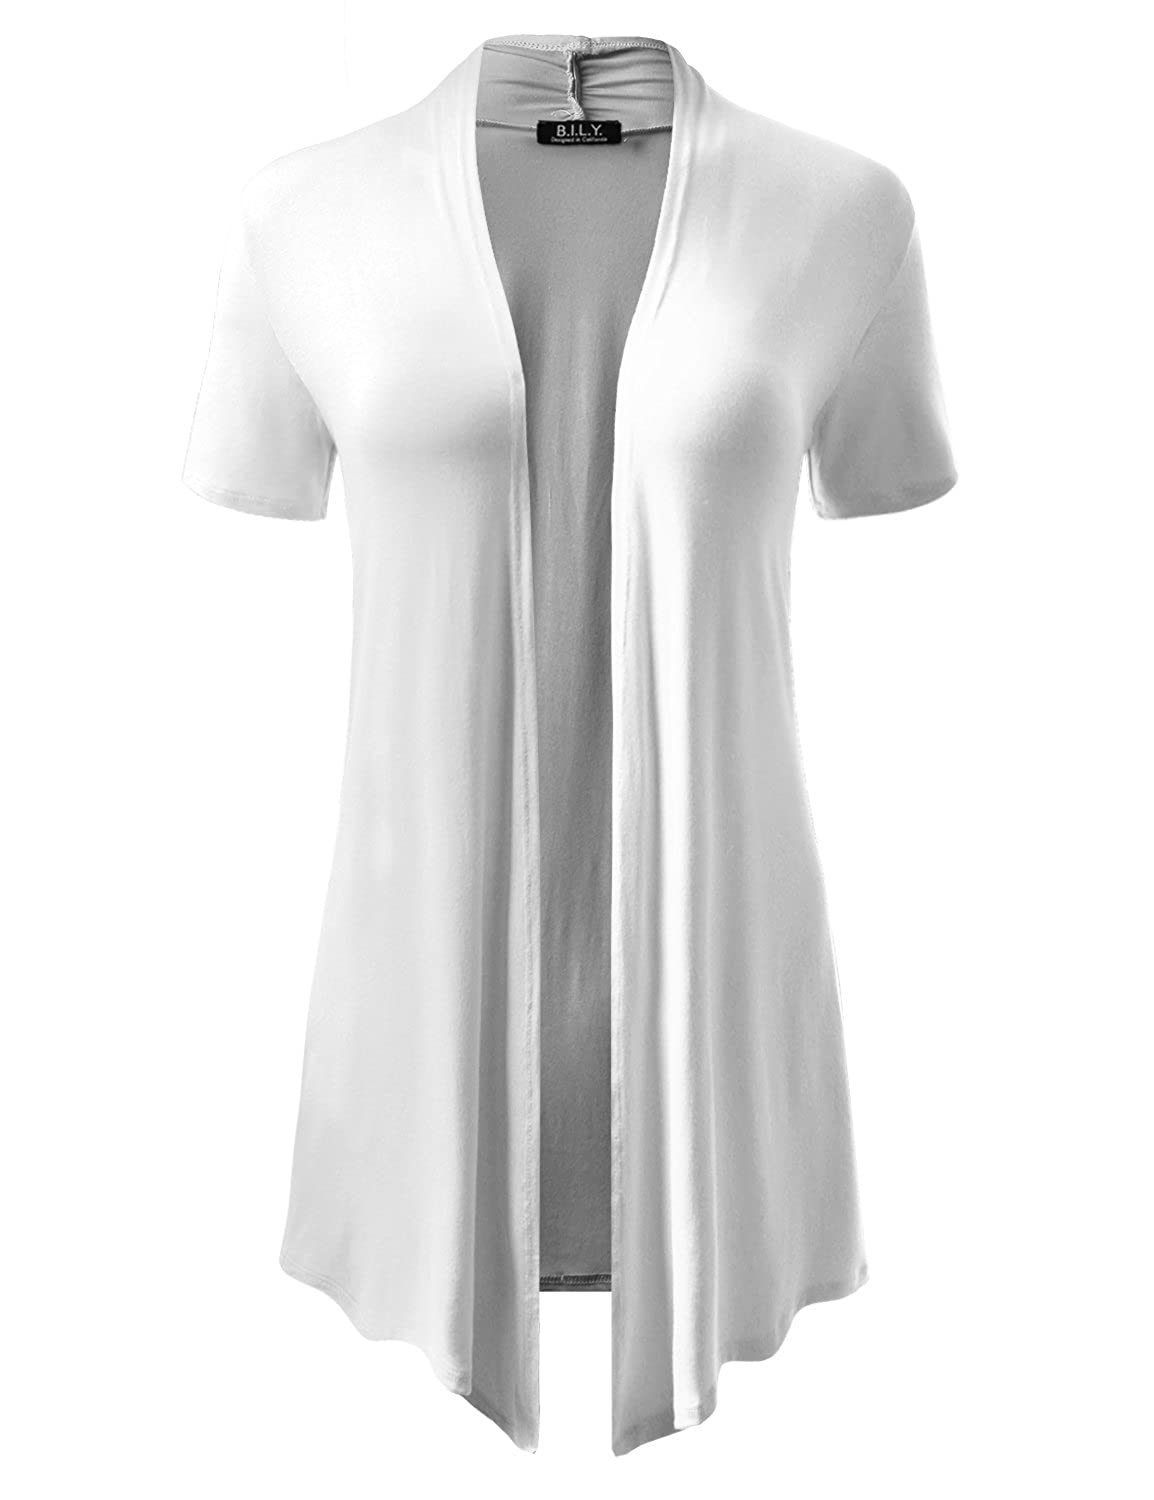 BH B.I.L.Y USA Women's ShortSleeve Open Front Drape Cardigan with Side Pockets White Small